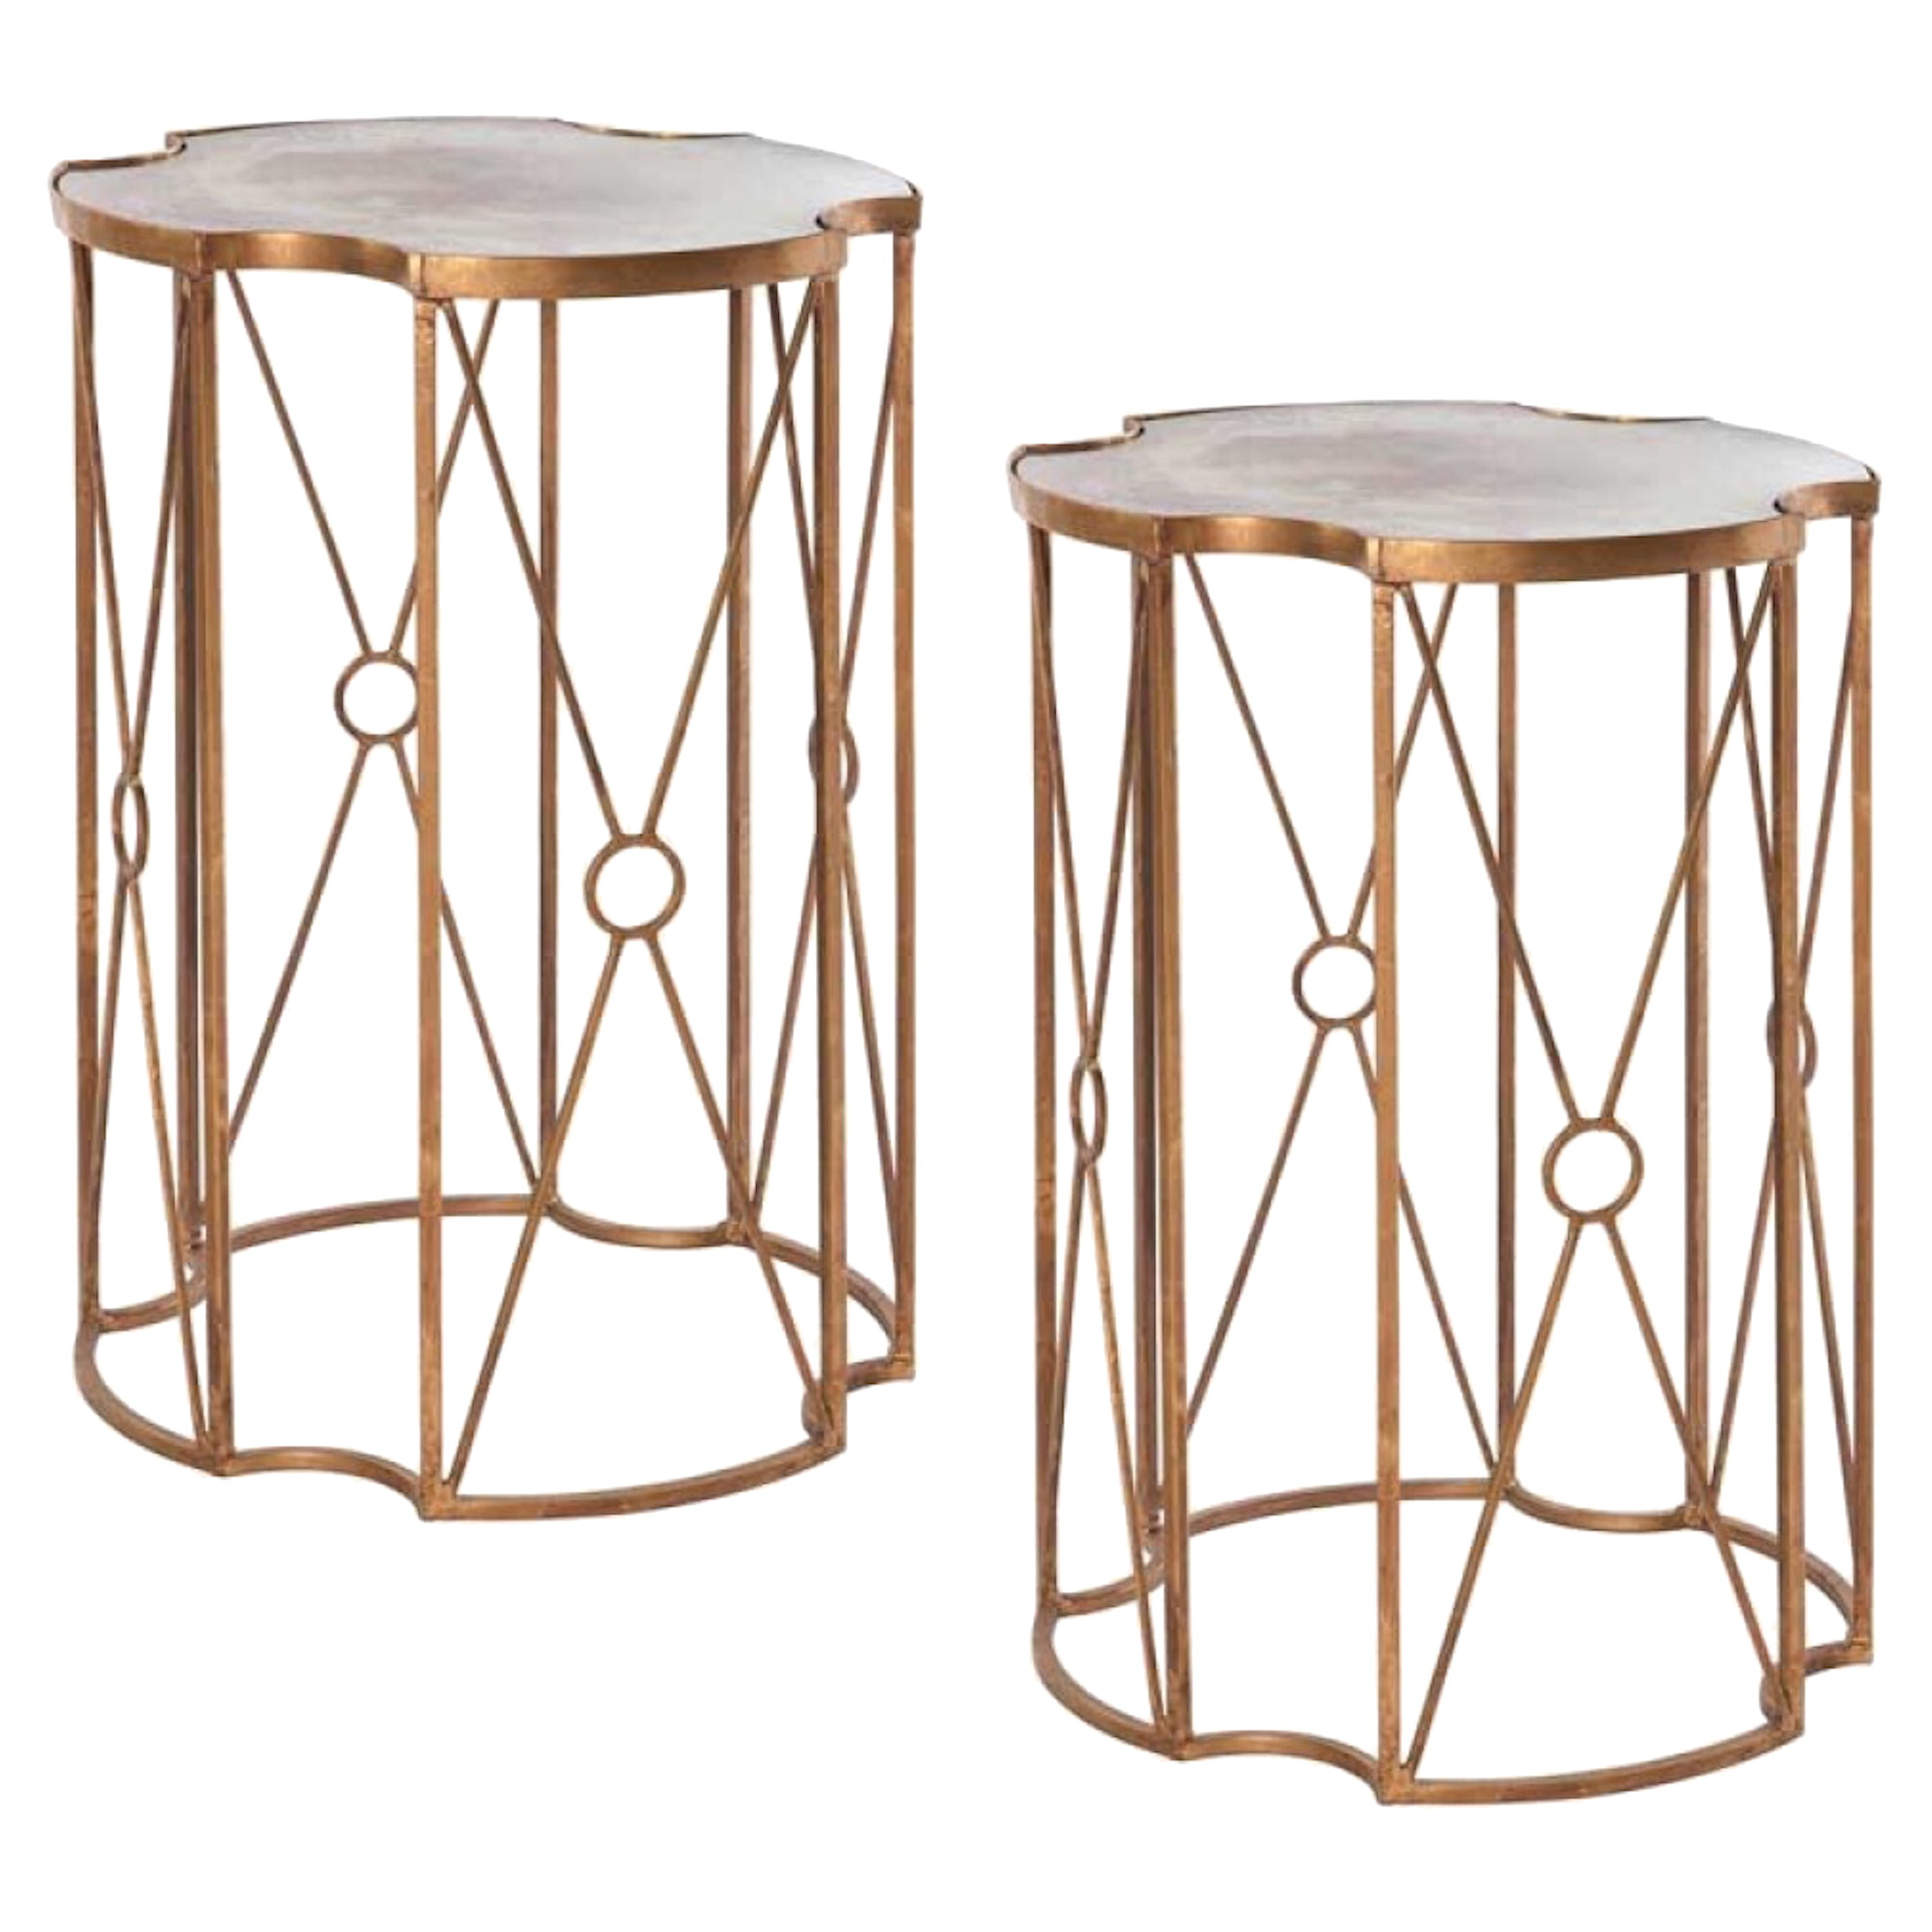 Two Gilt Metal and Antique Mirror Drinks Tables in the Style of Bagues.